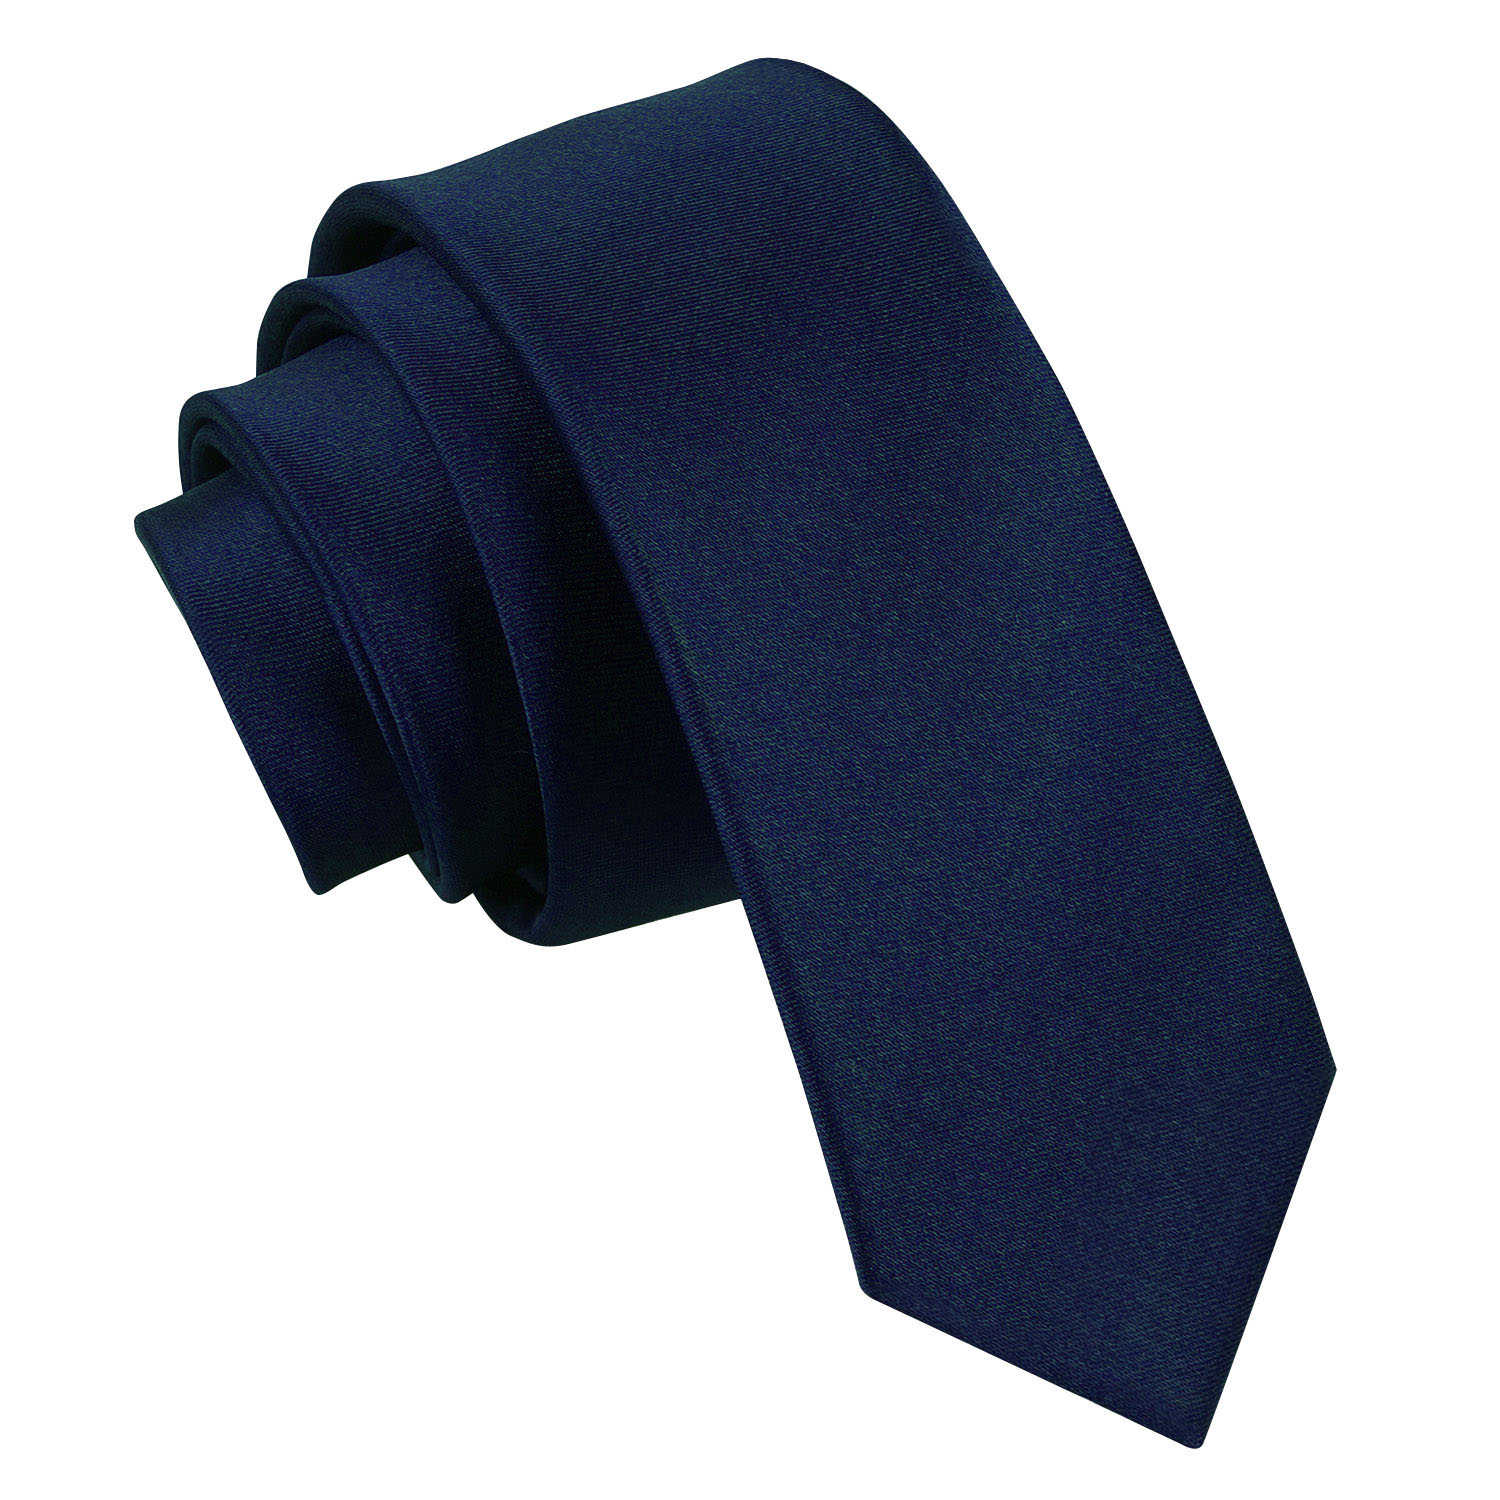 Skinny Tie is rated out of 5 by 6. Rated 5 out of 5 by BH51 from Stylish Ties I bought these ties for my 7 and 3 year old grandsons. The sizes fit them perfectly and the fabric was very attractive, with a subtle navy on navy pattern.